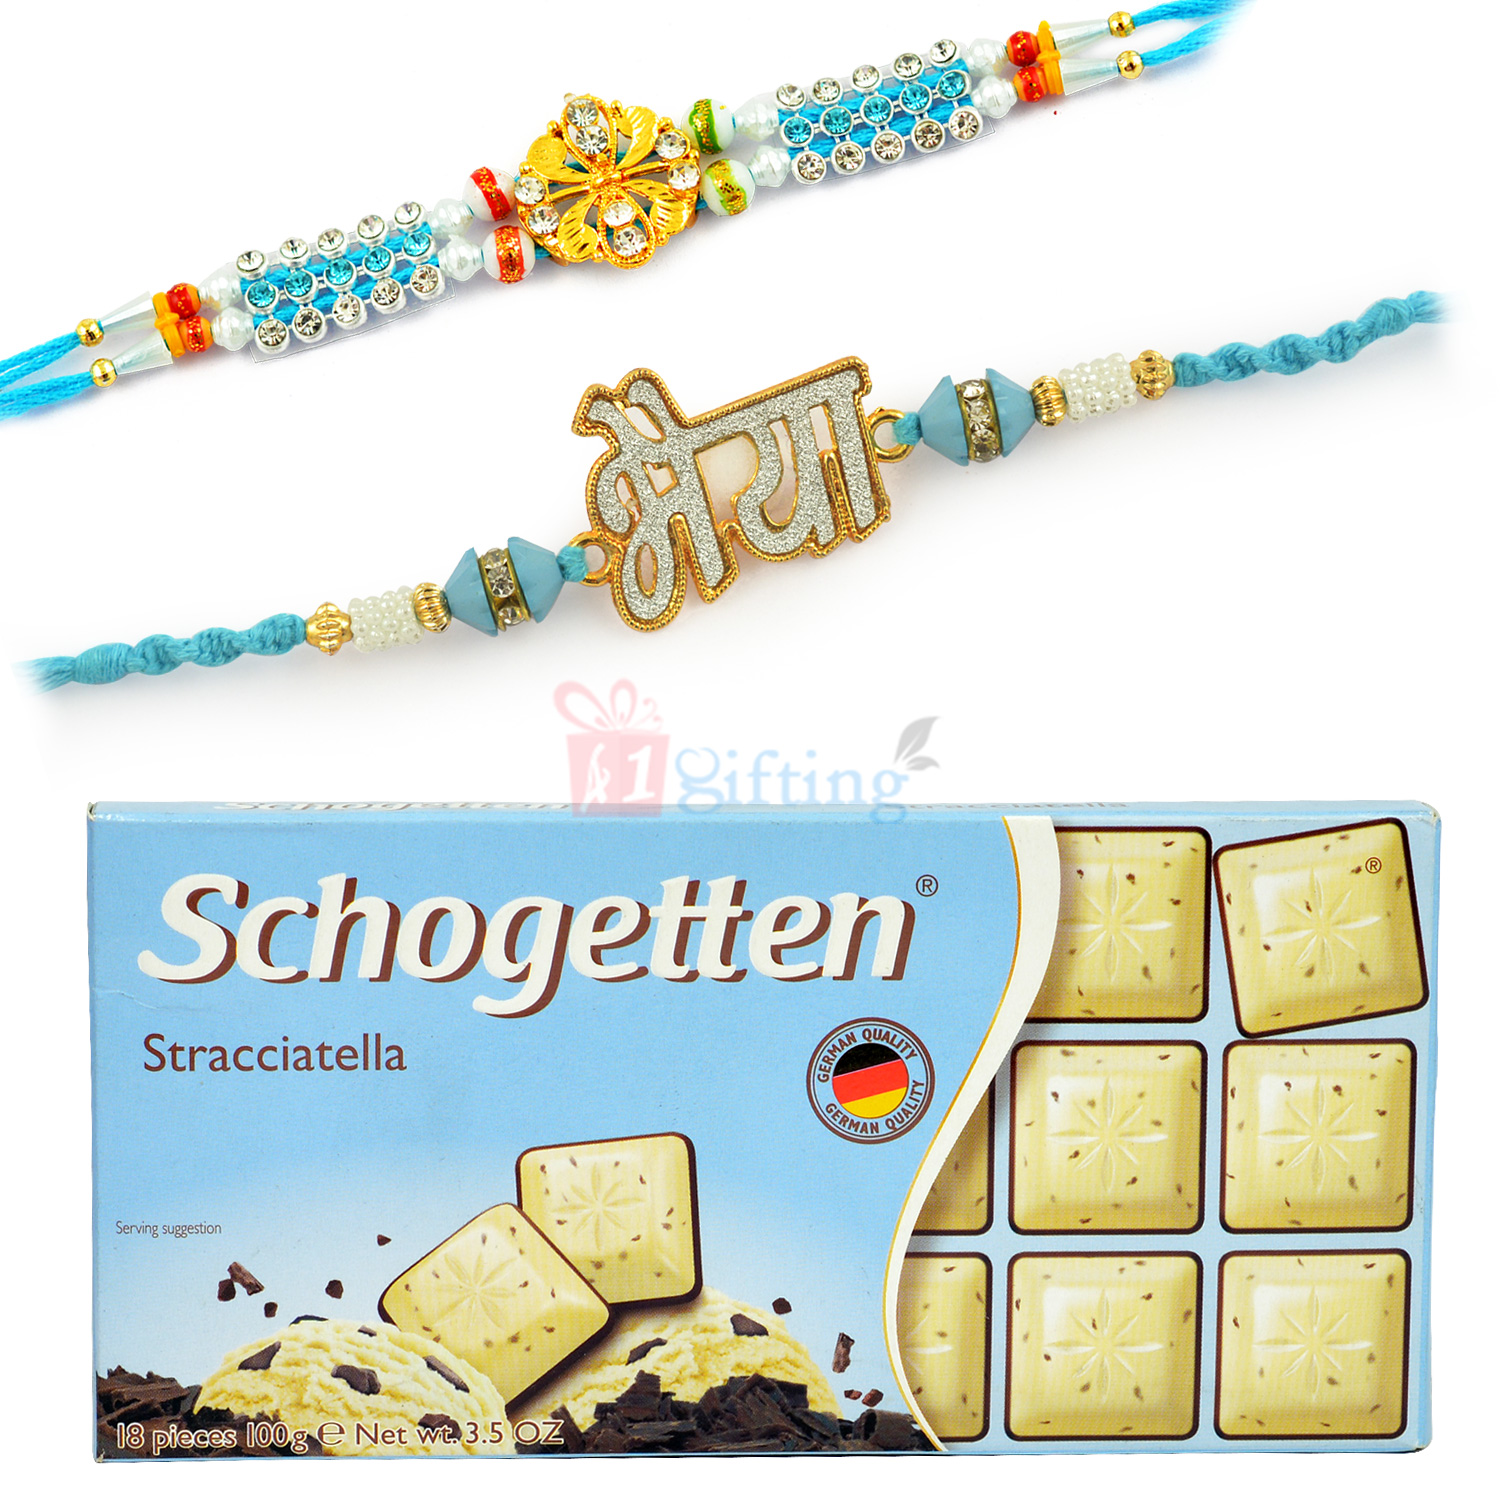 Bhaiya AD Rakhi and Diamond Rakhis with Schogetten Chocolate